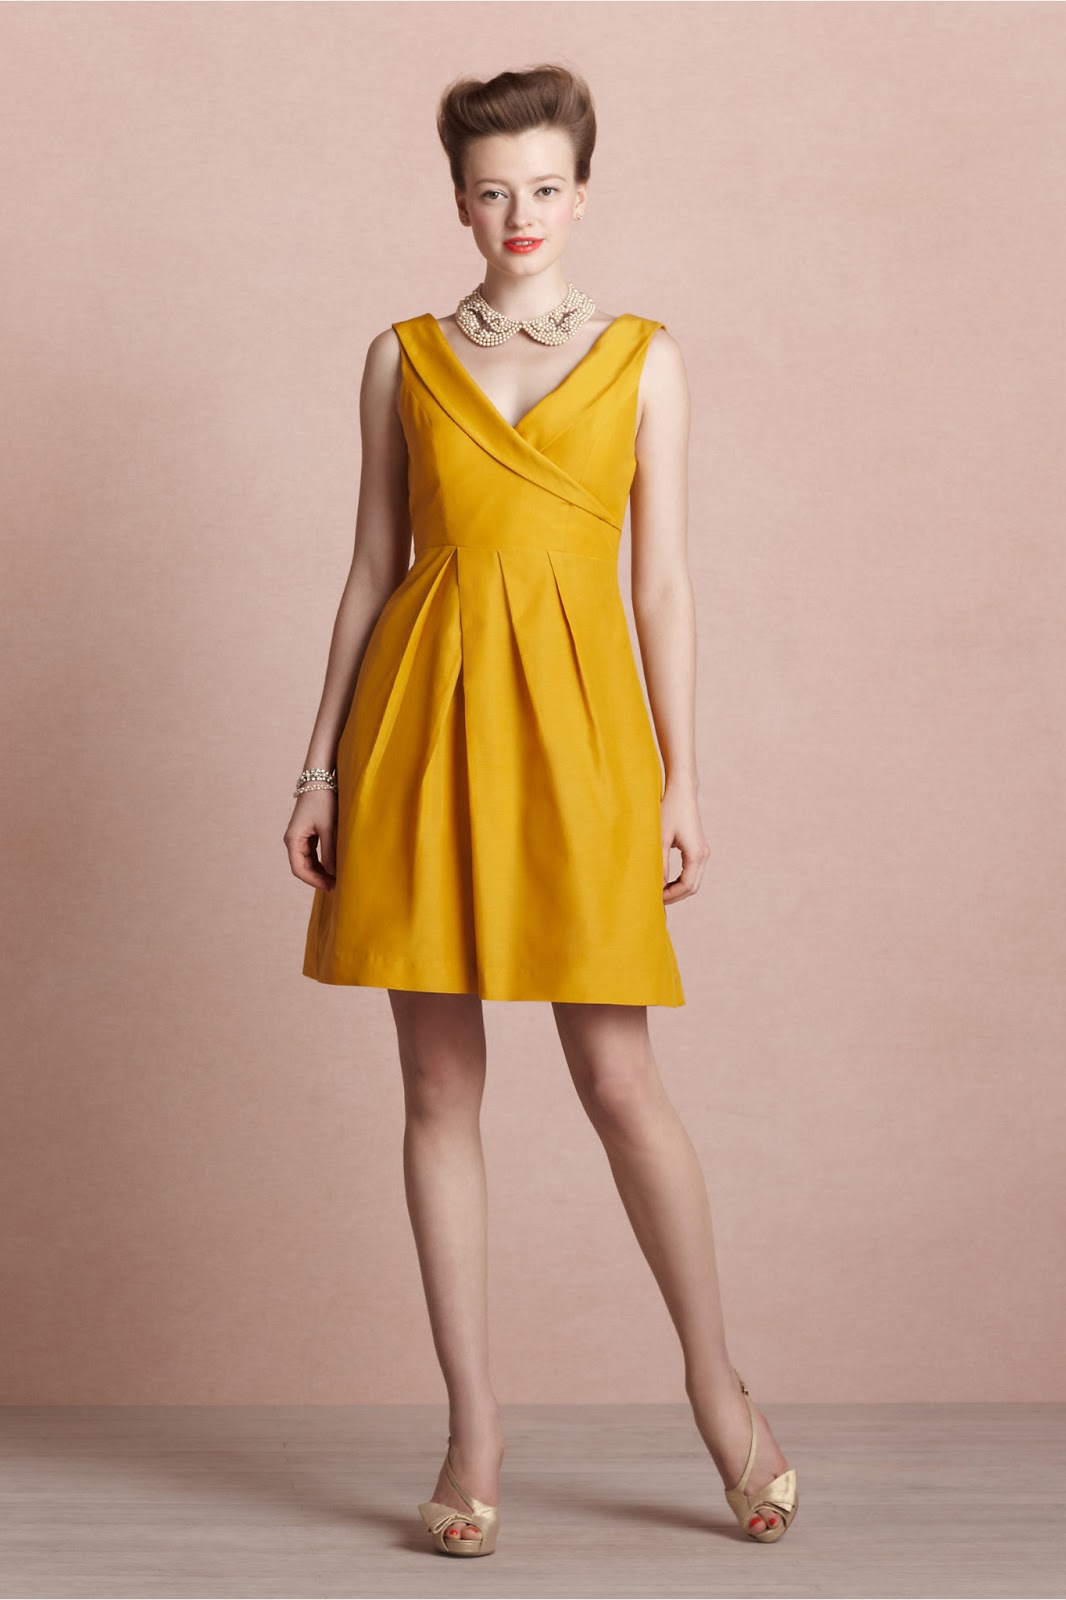 Mustard Yellow Bridesmaid Dresses | Dress images